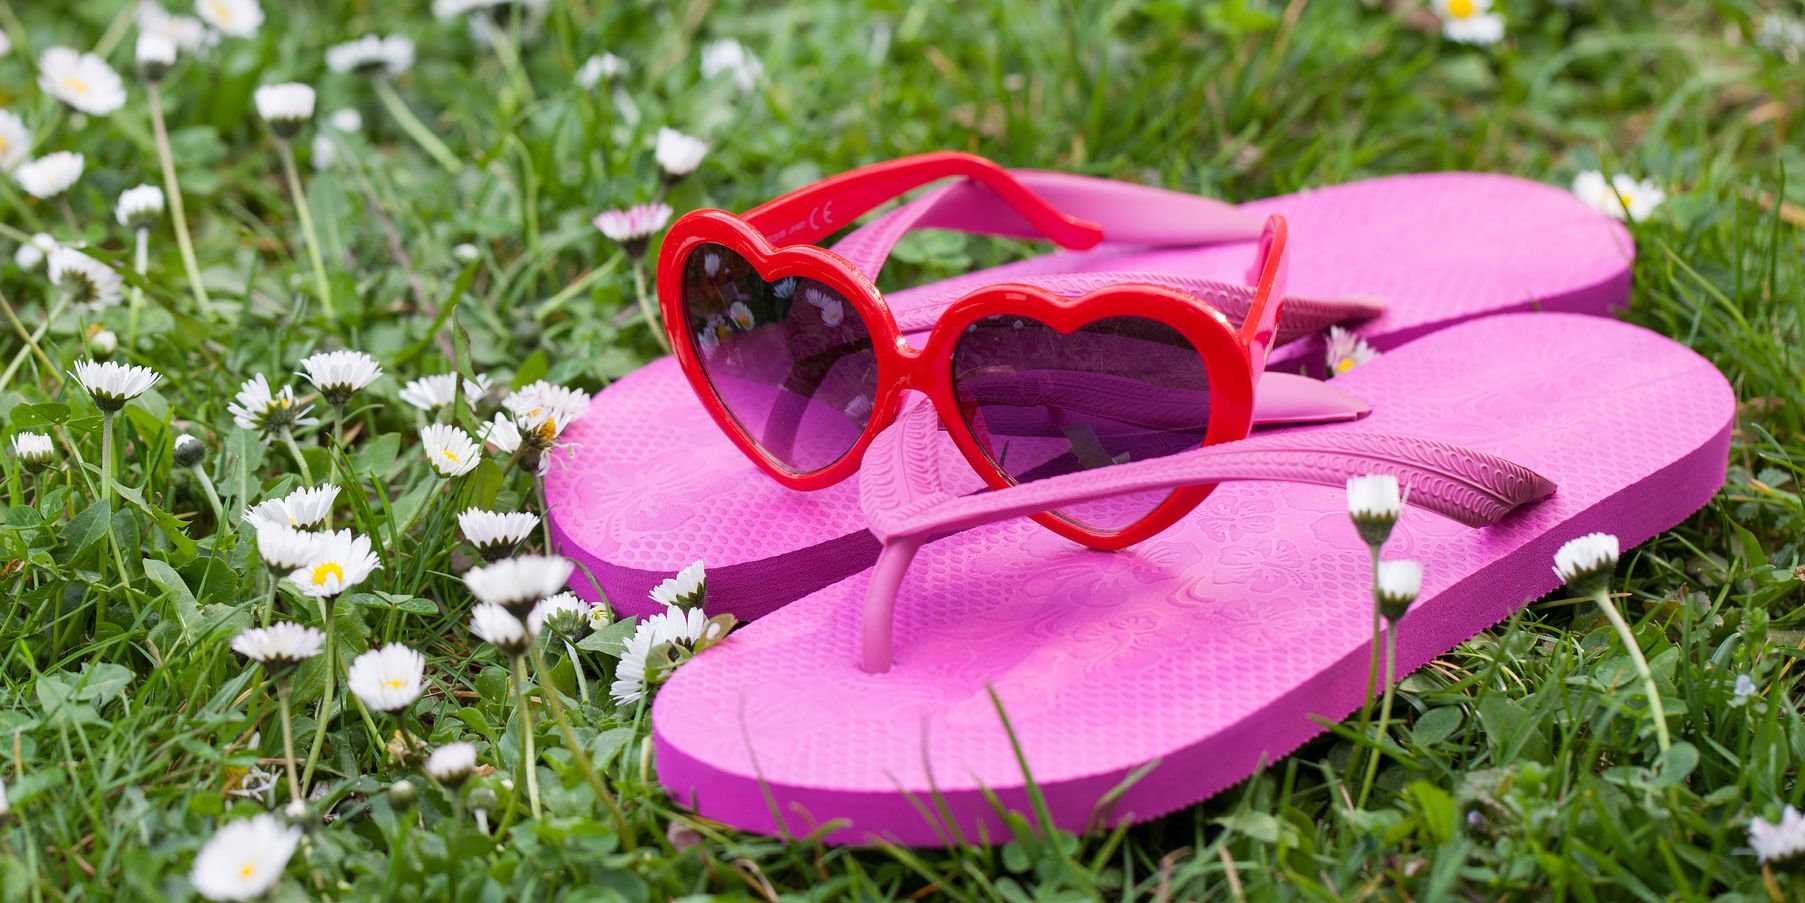 d46d2e14e11b17 12 Things You Need to Know Before You Wear Flip-Flops